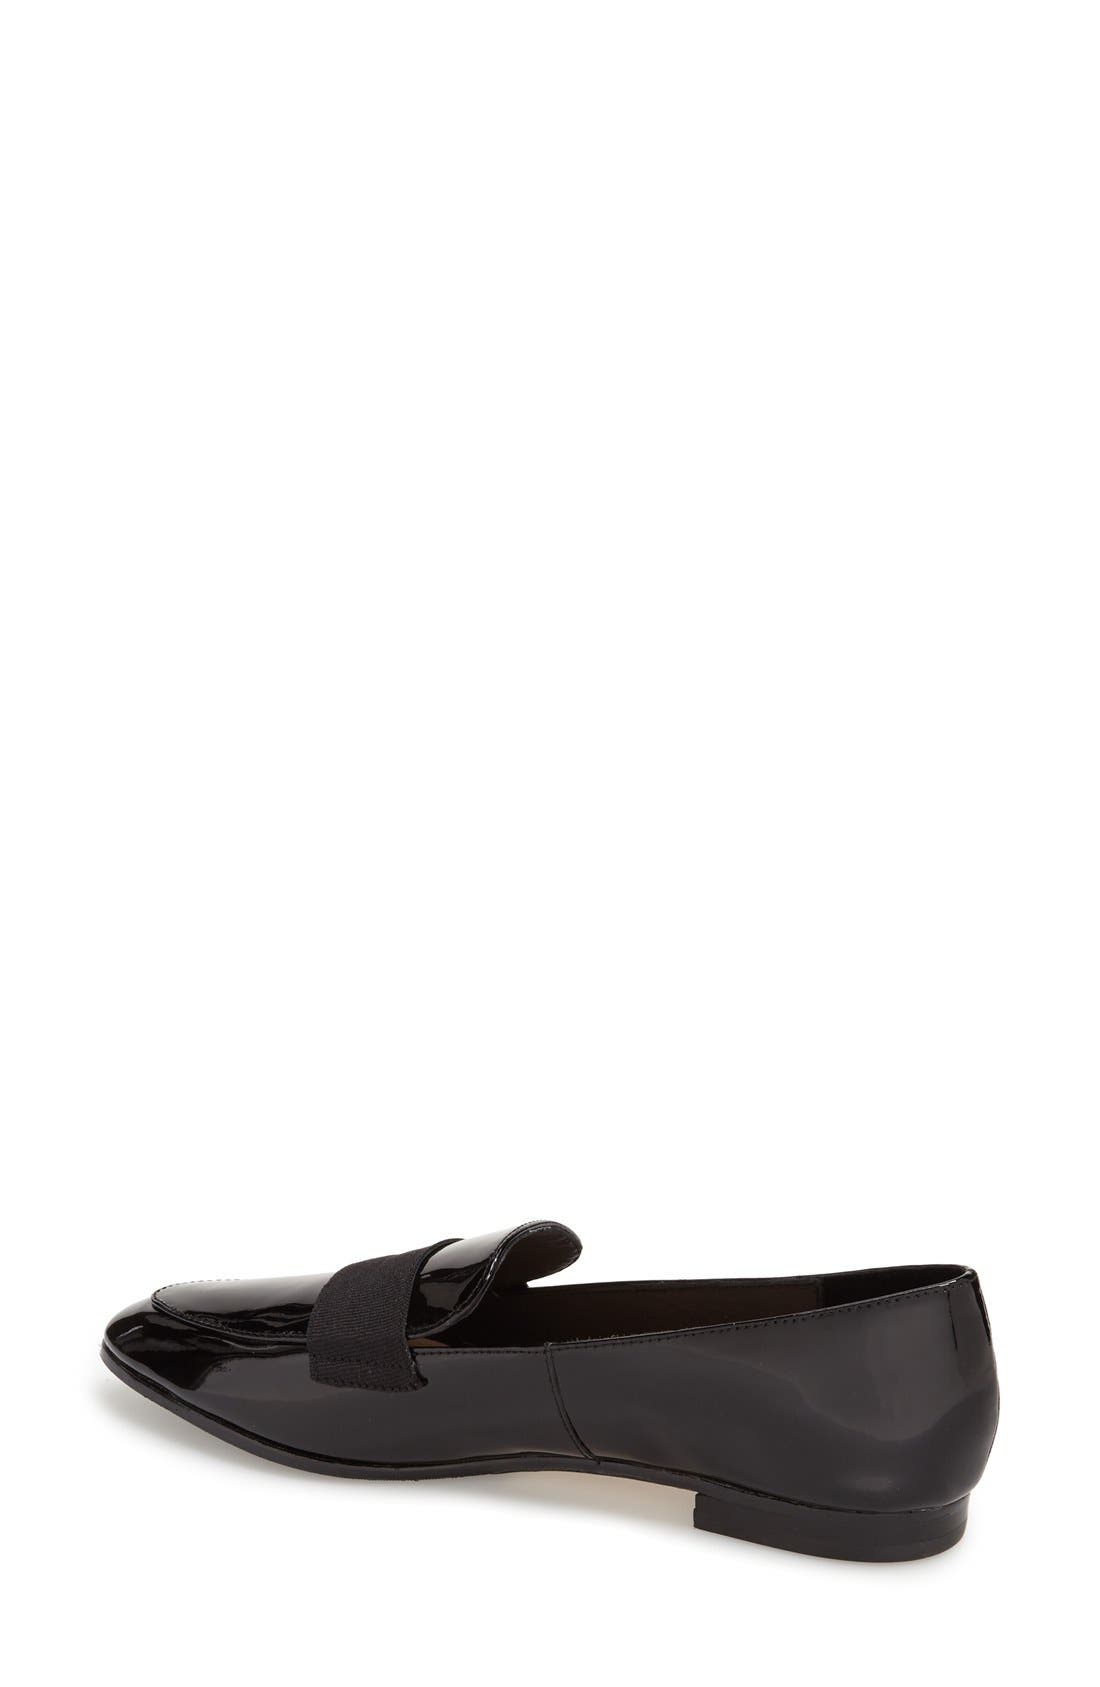 'corina' pointy toe loafer,                             Alternate thumbnail 4, color,                             001